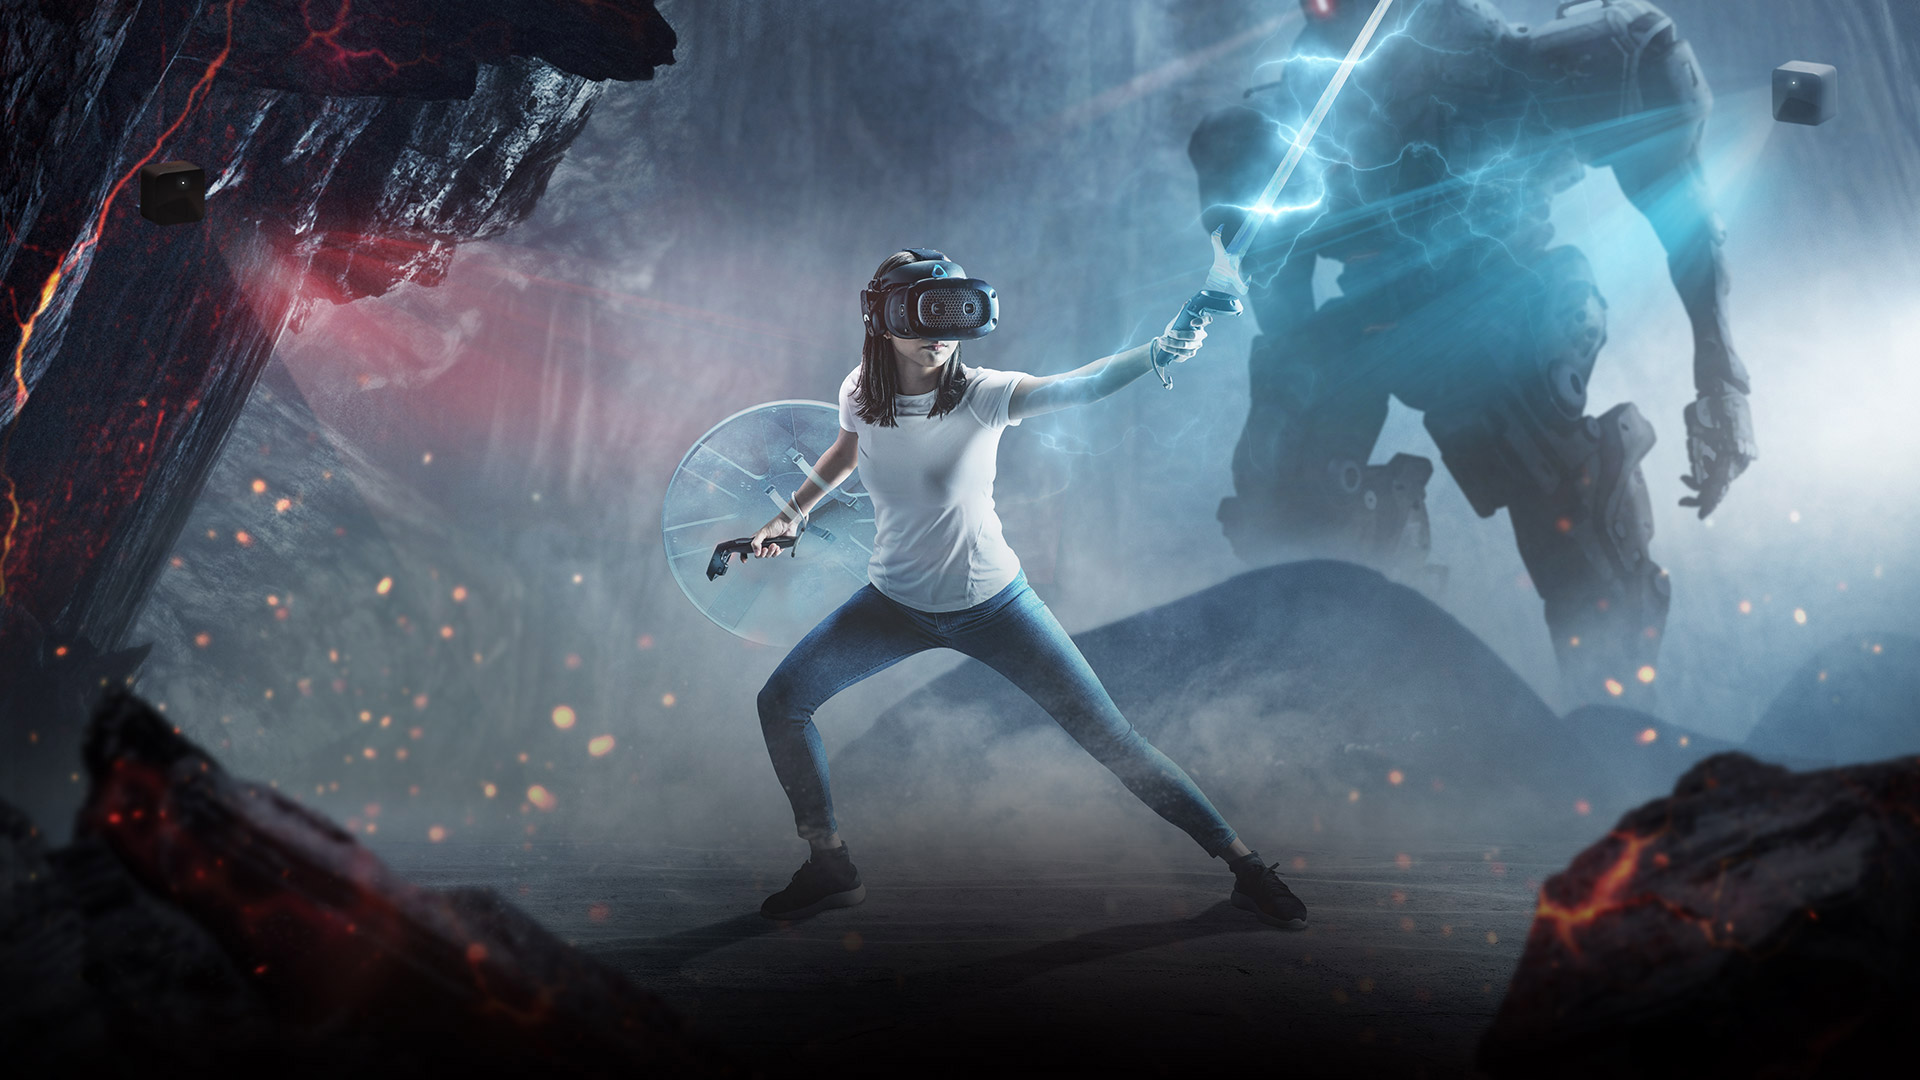 game vr